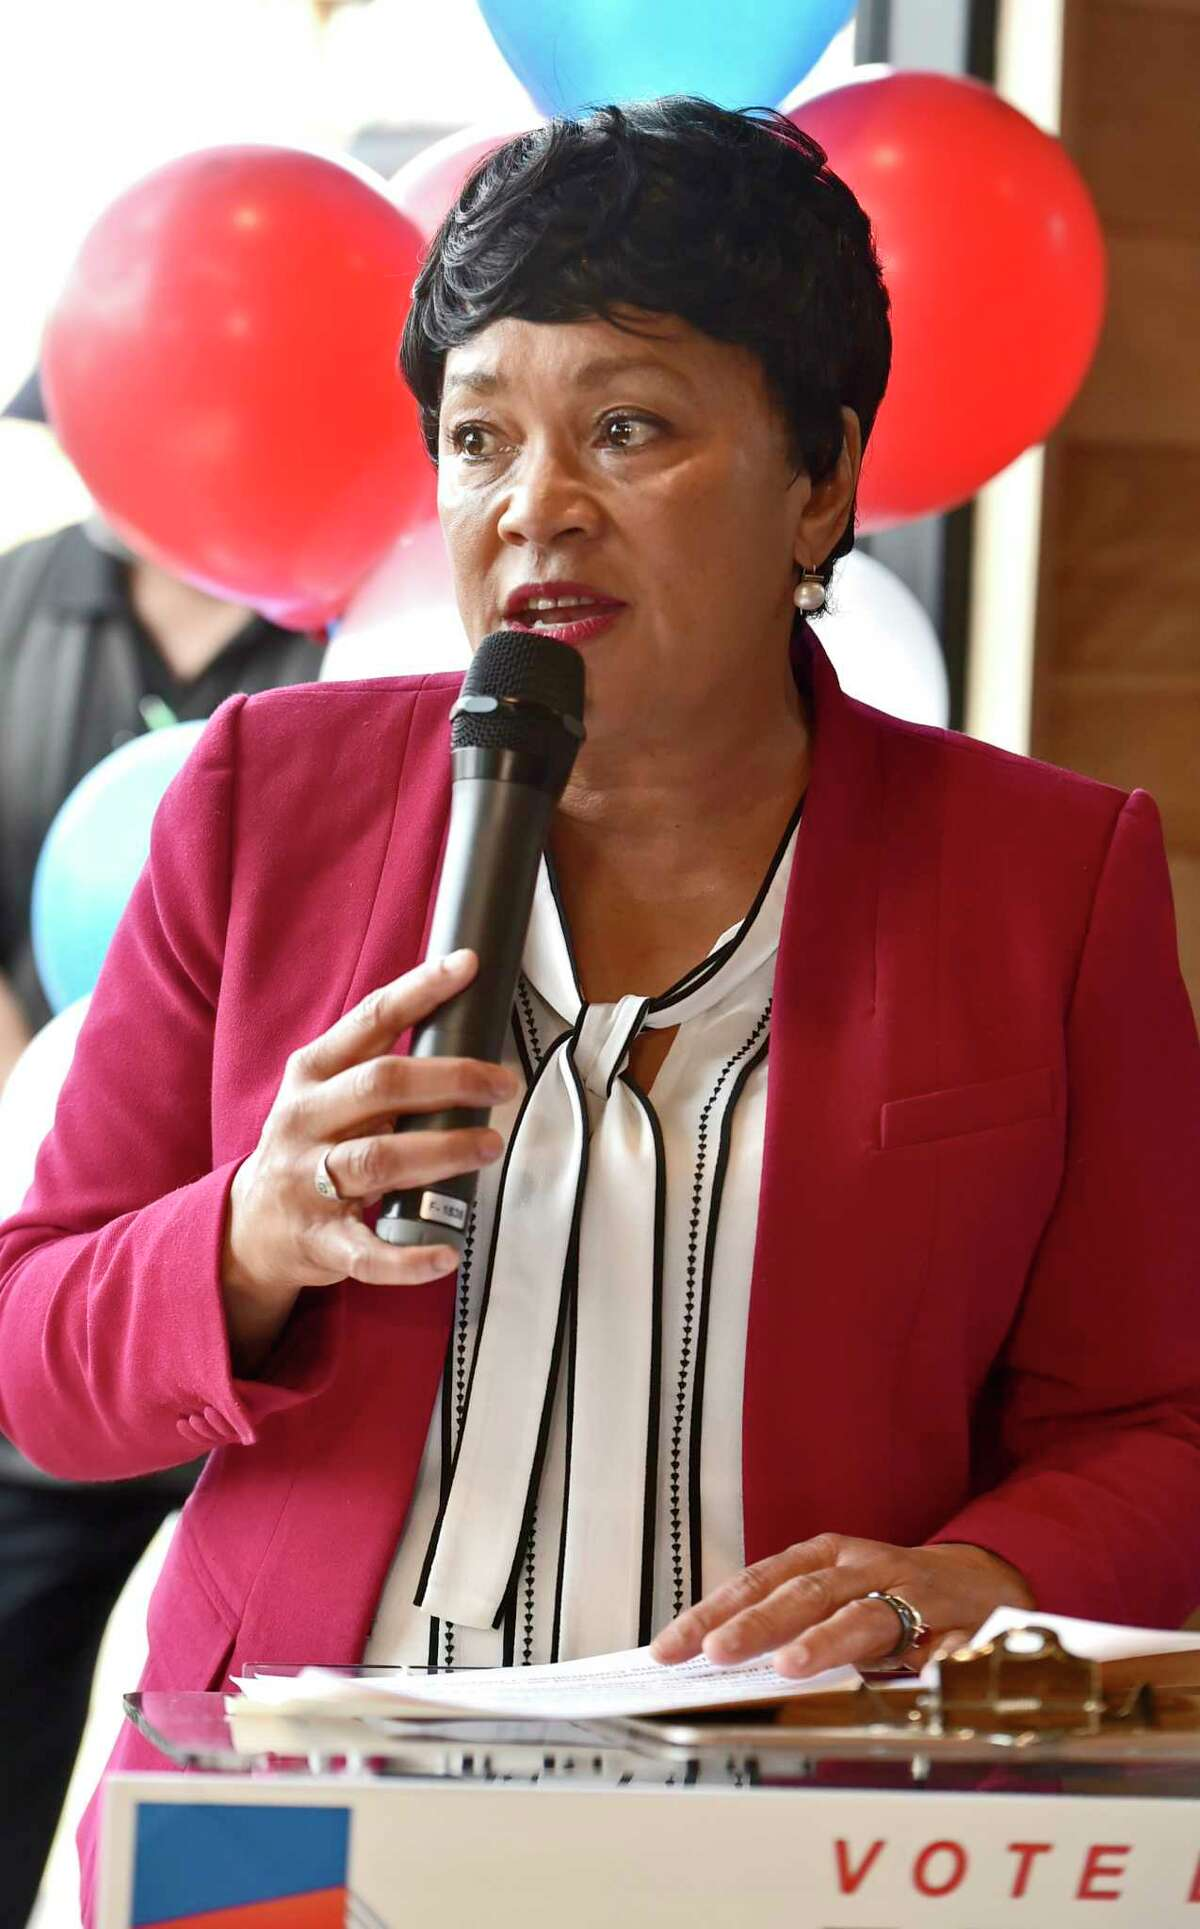 New Haven, Connecticut - Saturday, April 13, 2019: New Haven Mayor Toni Harp at her rally Saturday at the Stack barbecue restaurant in New Haven kicking of her re-election campaign.